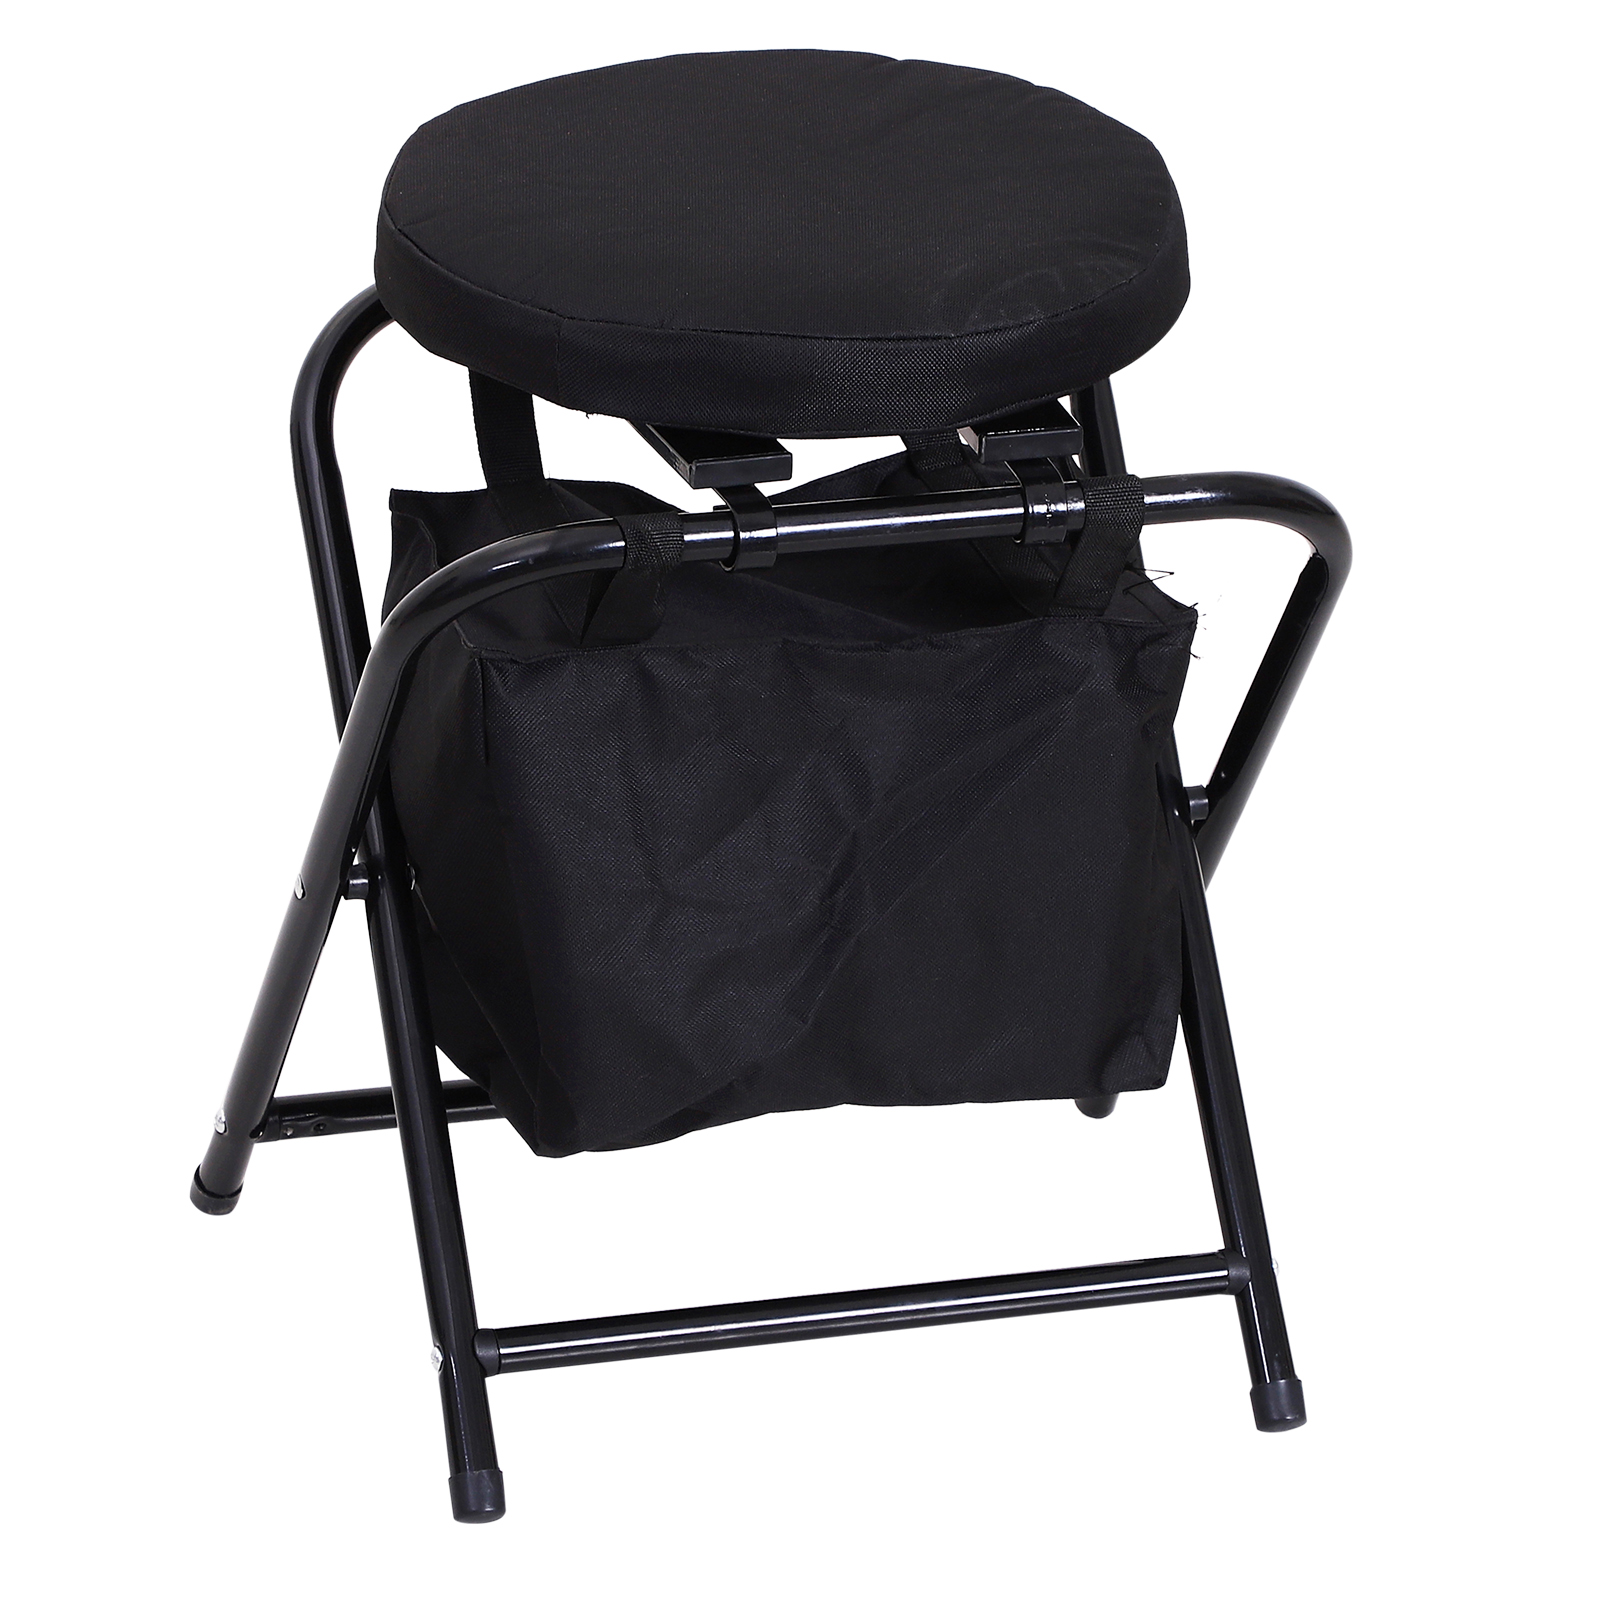 Outsunny-Folding-Rotating-Travel-Camping-Stool-for-Adults-w-Storage-Bag thumbnail 4